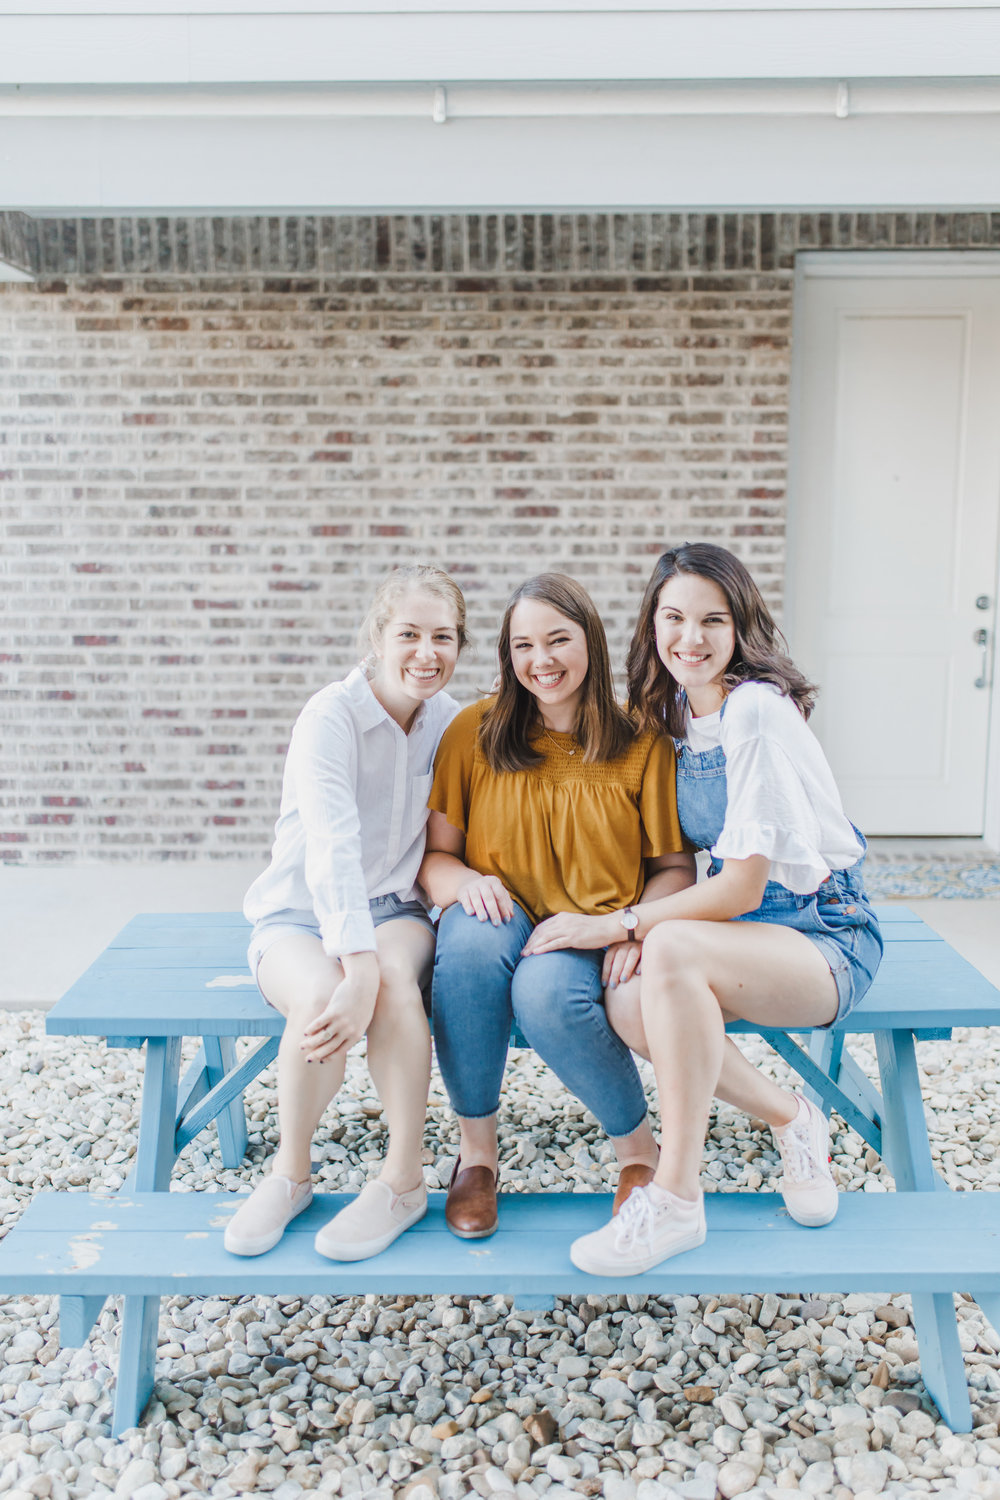 """About Us - Welcome, friends! We are Elizabeth, Alison, and Elaine—three college women looking to dream big and pursue God's calling in our lives.In All Things began as a passing comment between friends about a podcast to reach the current generation of college women, and through prayer, a multitude of discussions, and endless laughs, we decided to give the podcast the """"good old college try"""" and be bold in this idea we feel God has placed on our hearts!"""